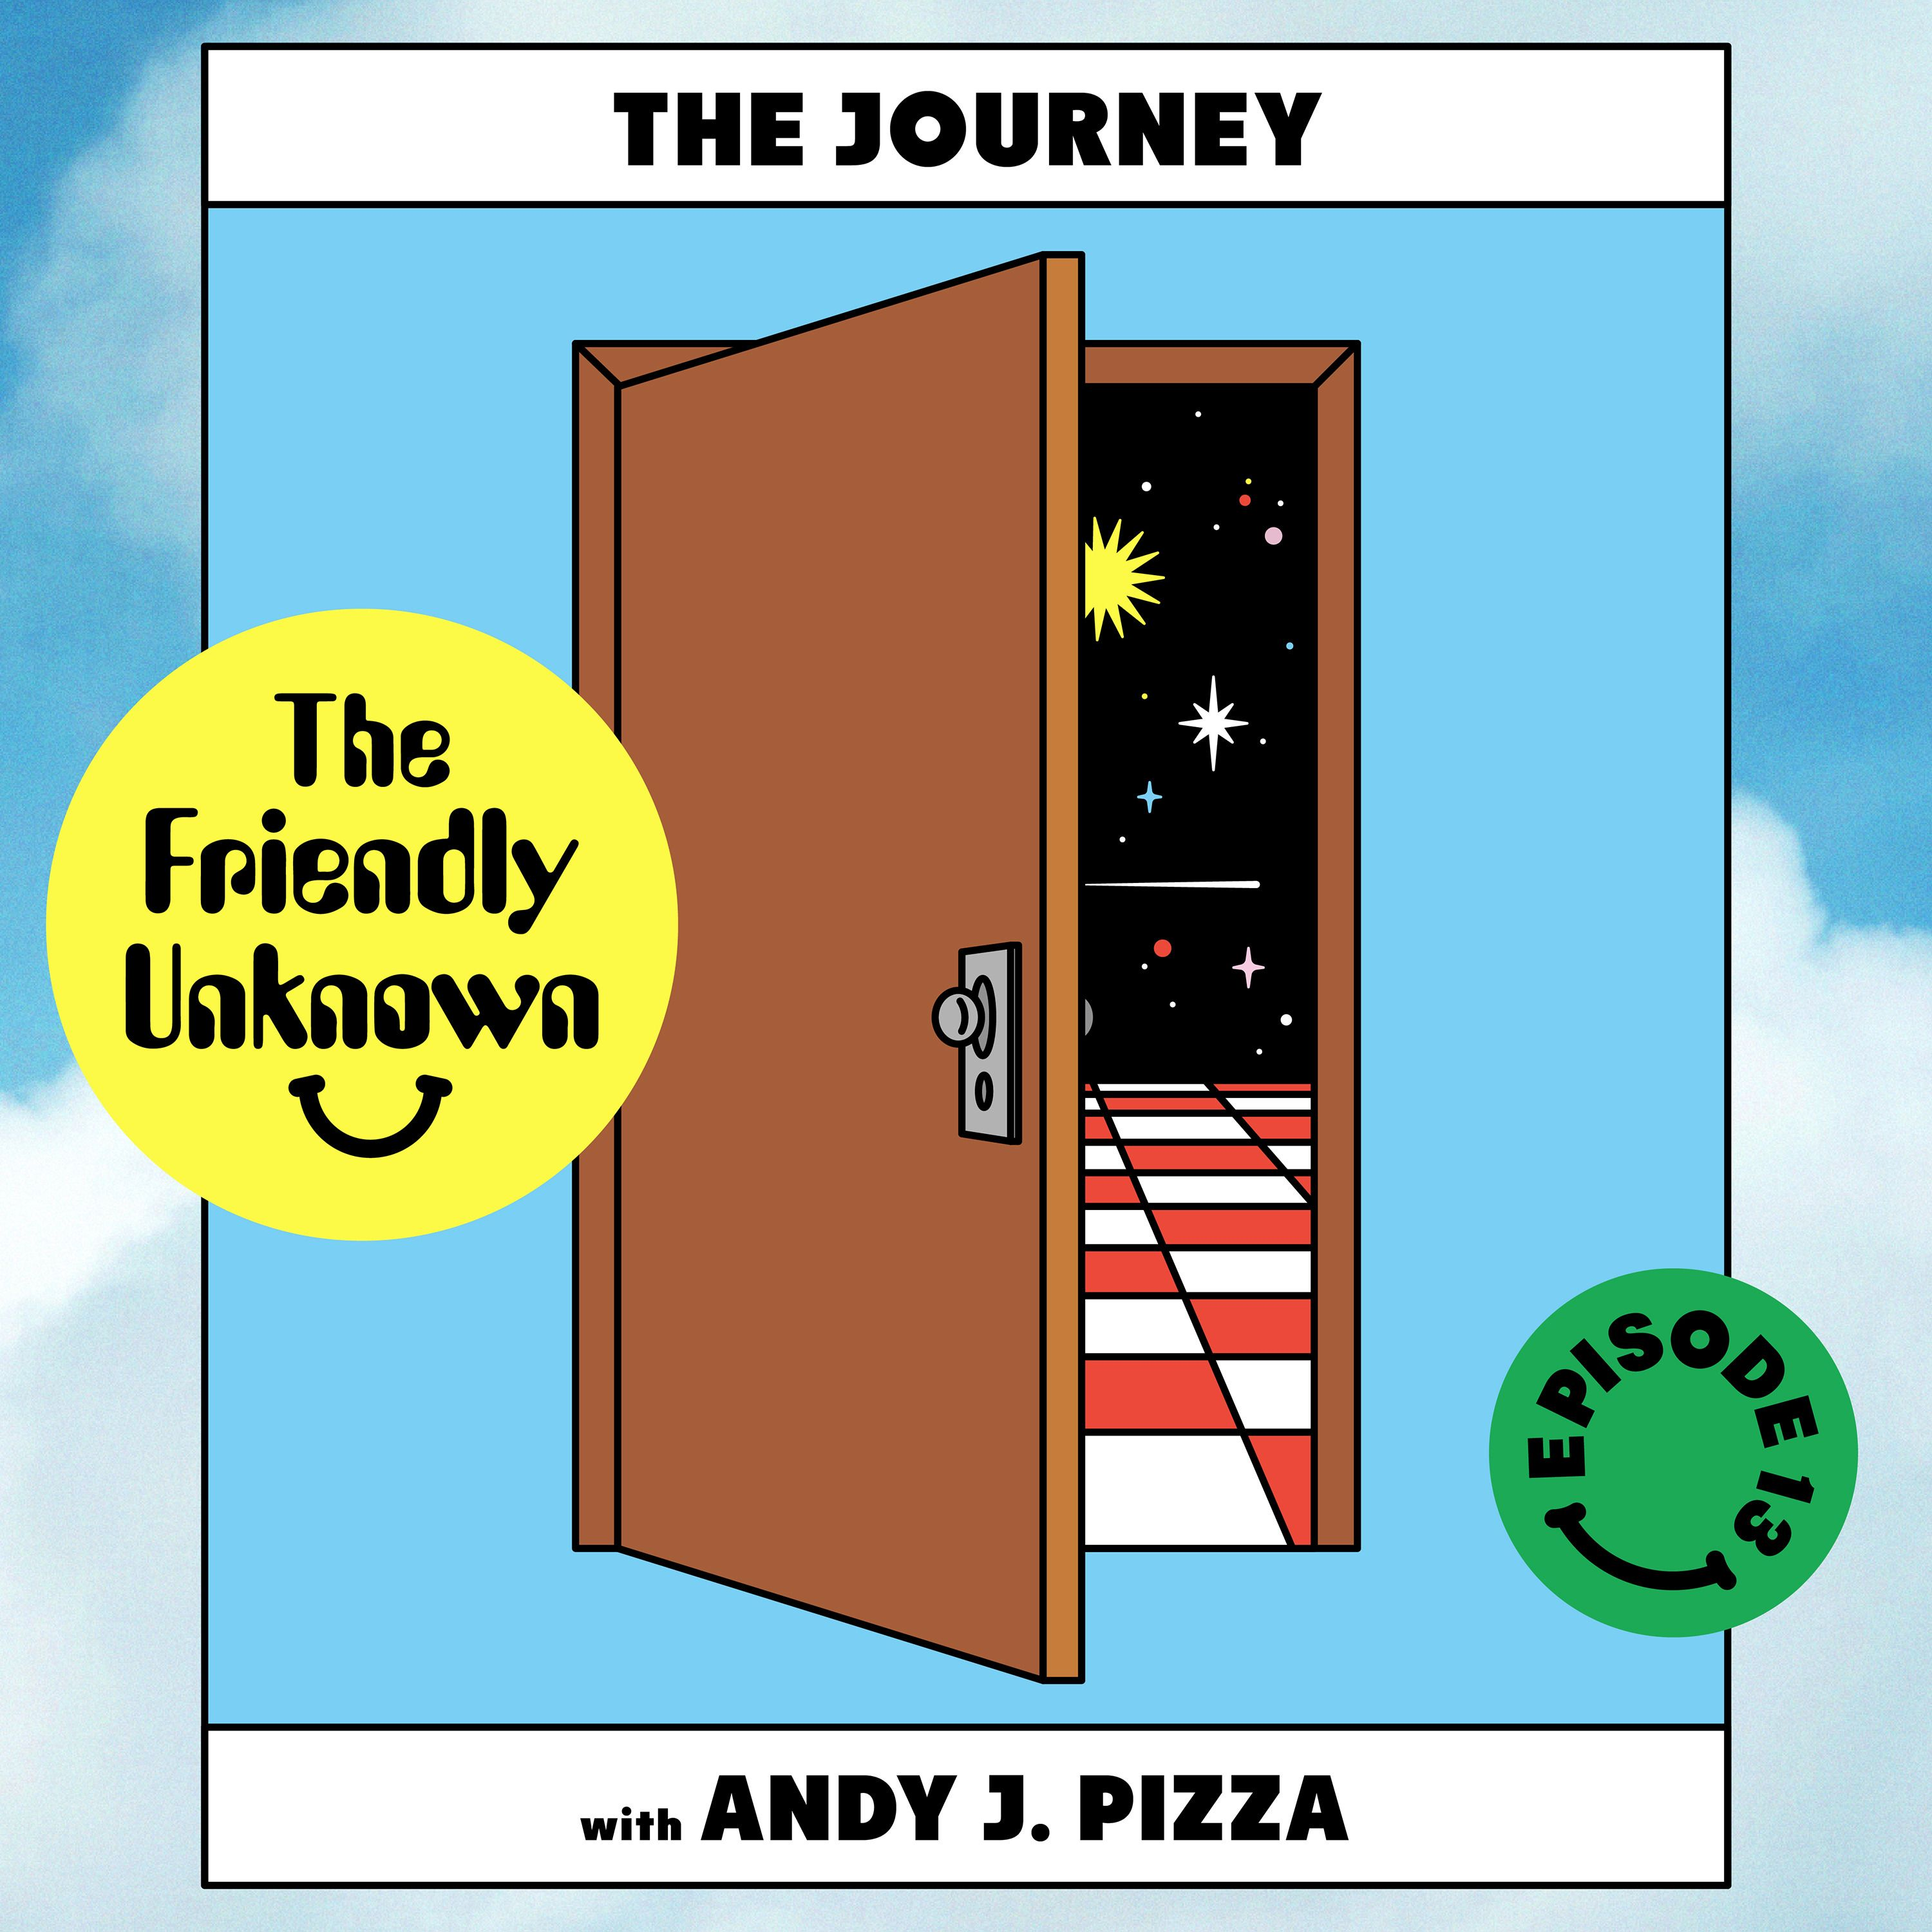 13 - The Journey with Andy J. Pizza